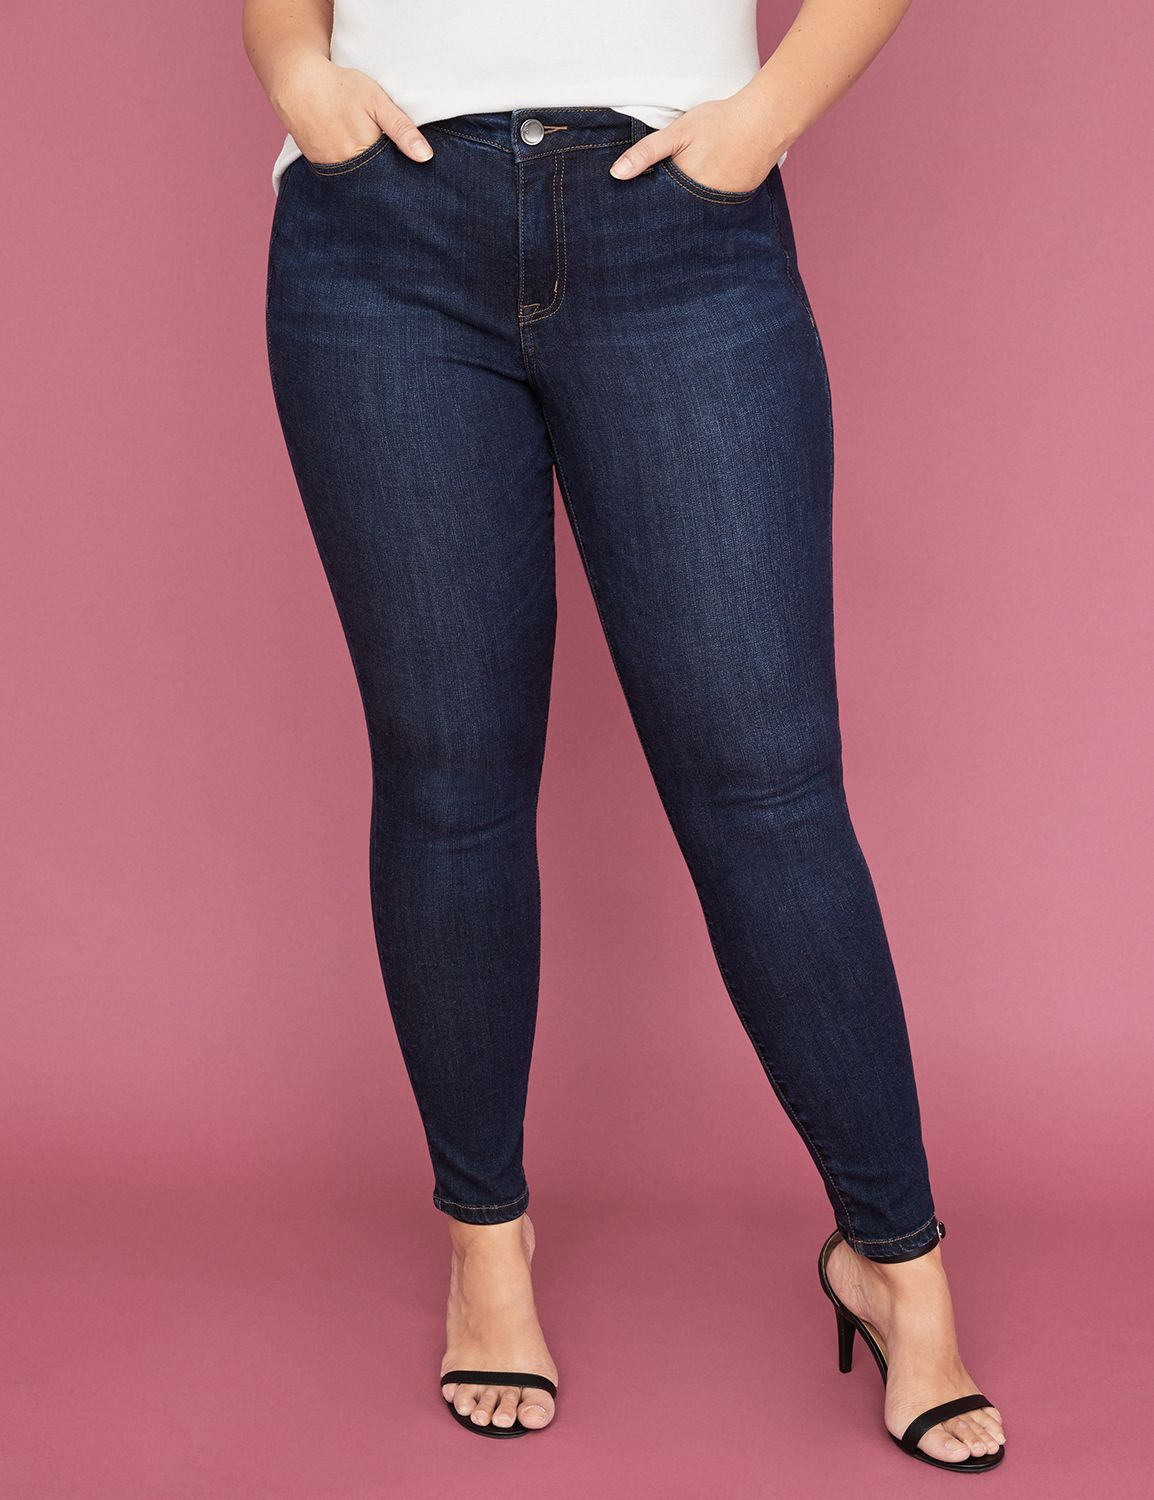 Power Pockets Super Stretch Skinny Ankle Jean - Dark Wash